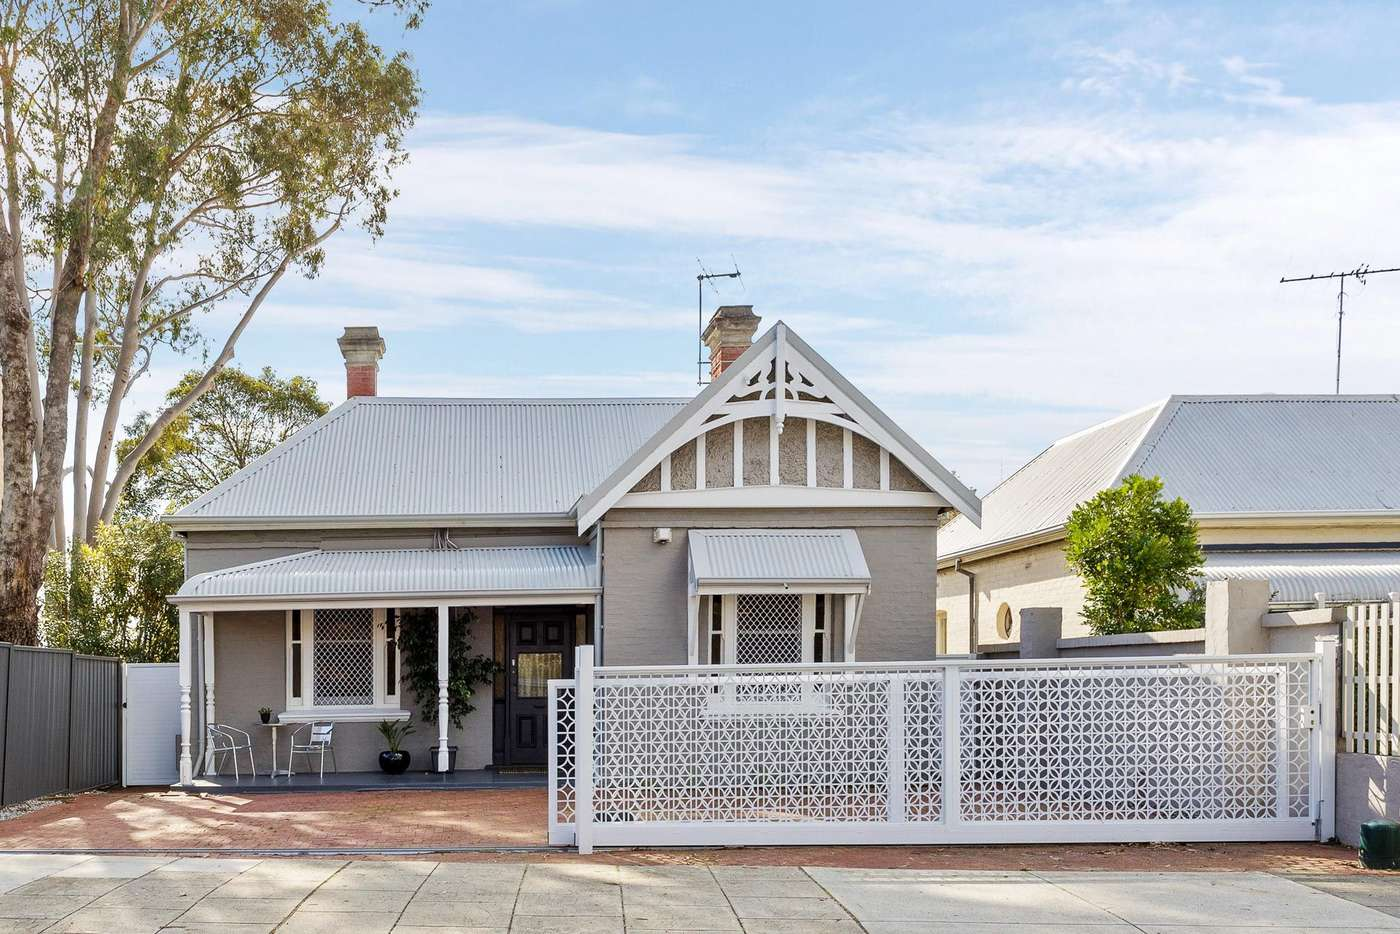 Main view of Homely house listing, 188 Railway Parade, West Leederville WA 6007